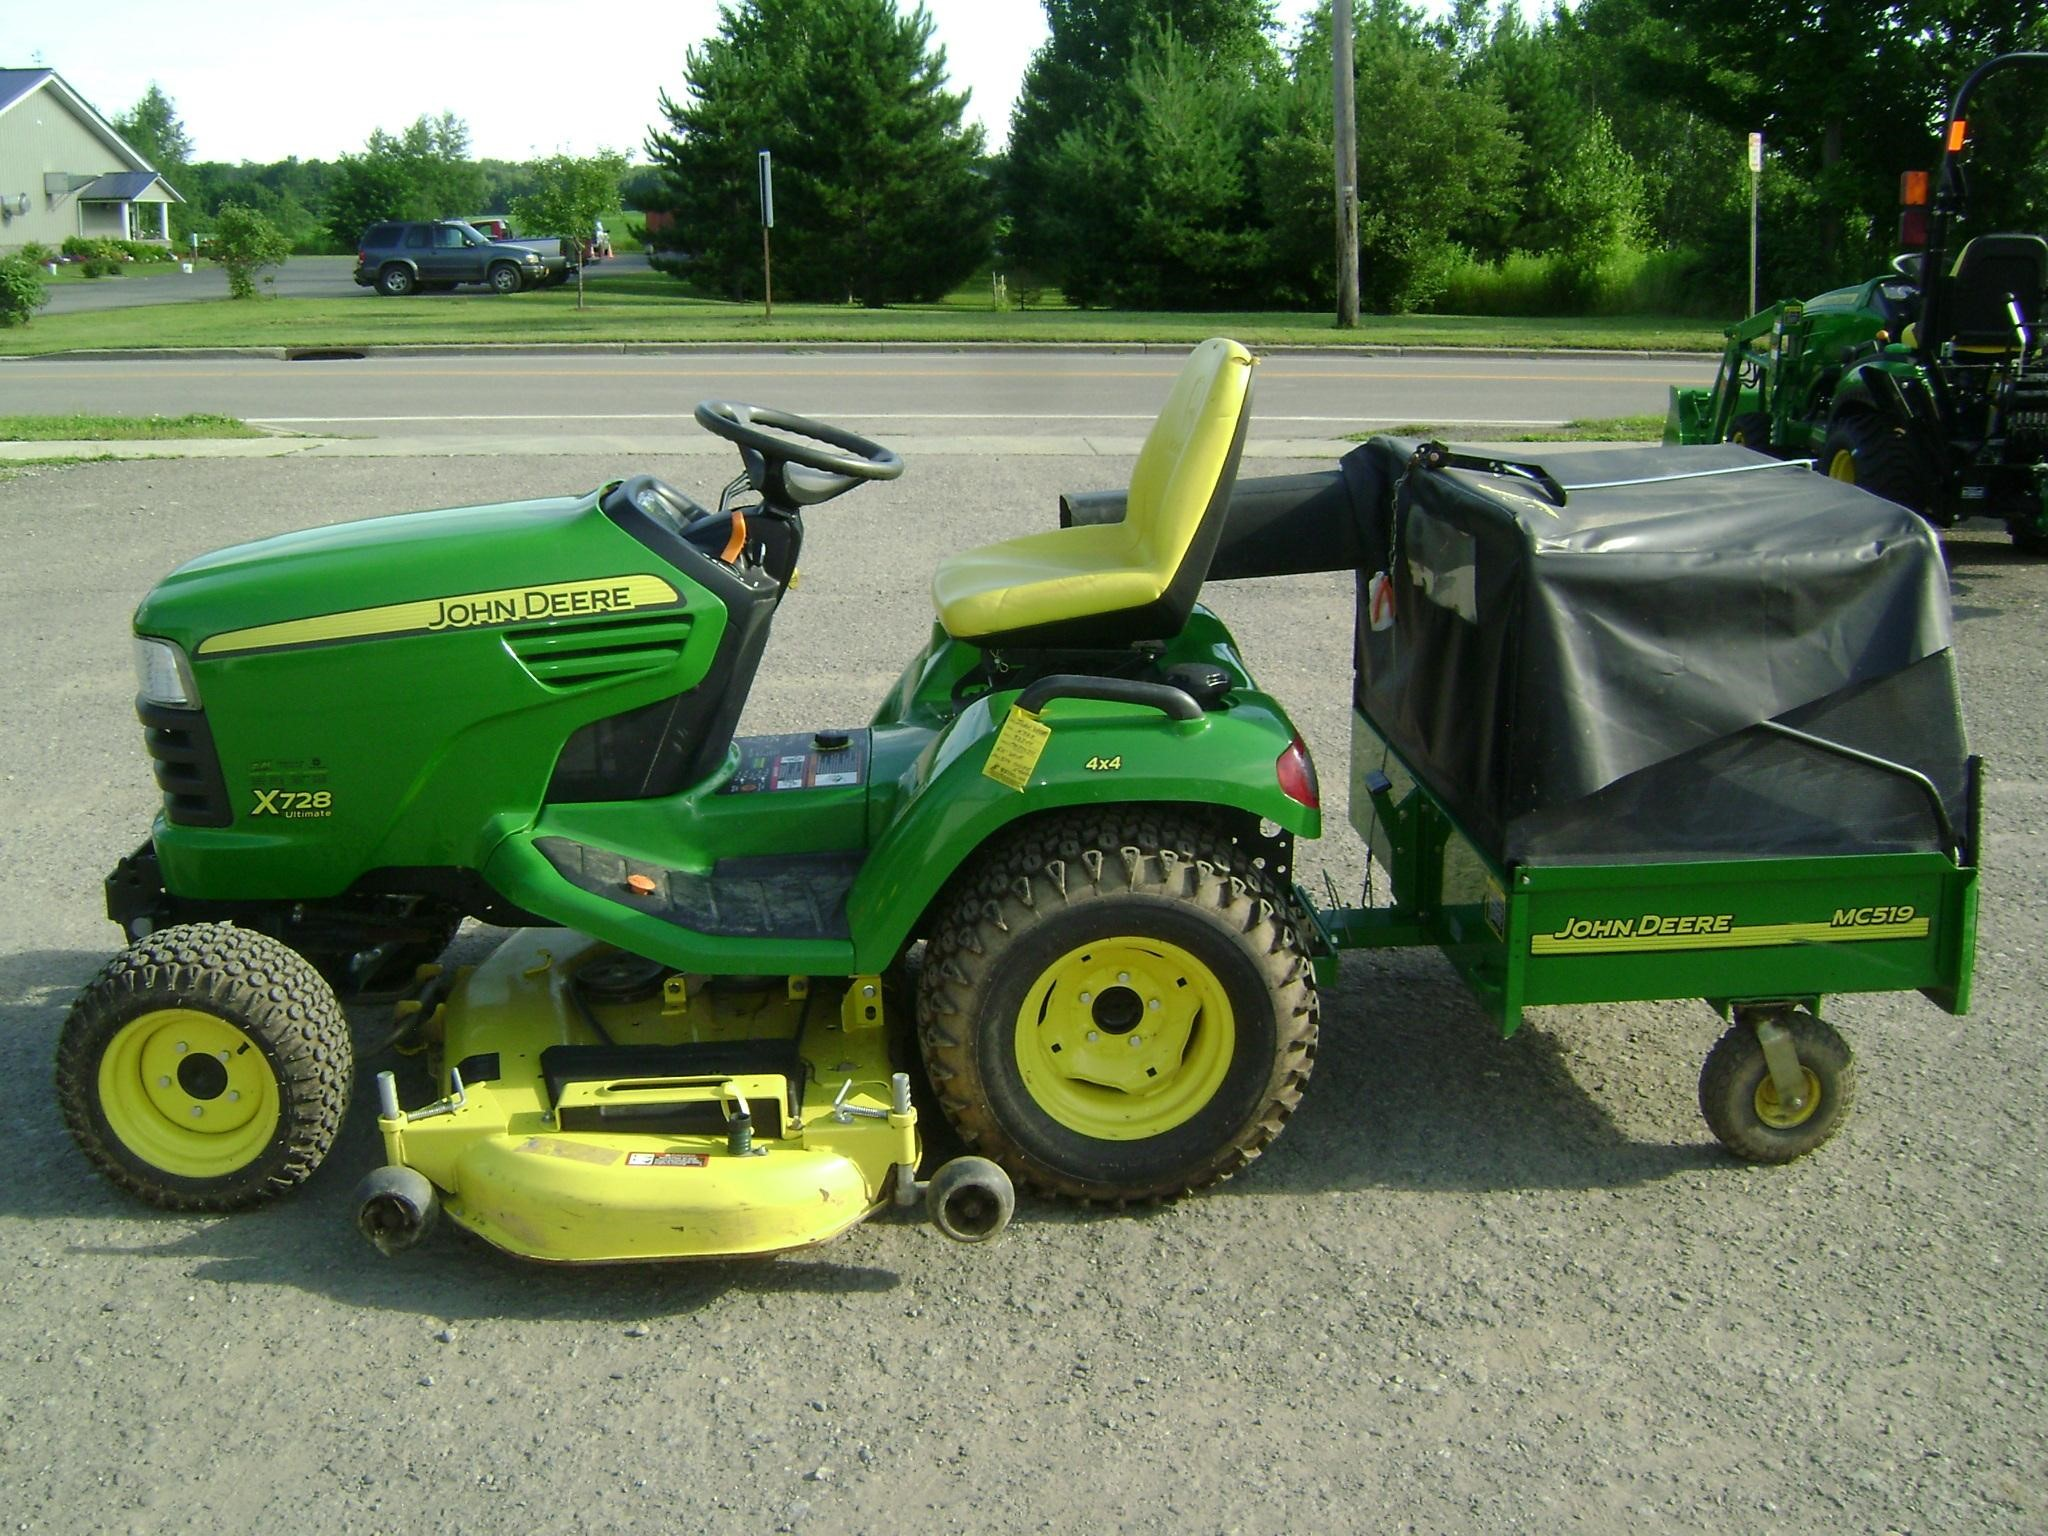 John Deere X728 Lawn Tractor : Wisconsin ag connection john deere riding lawn